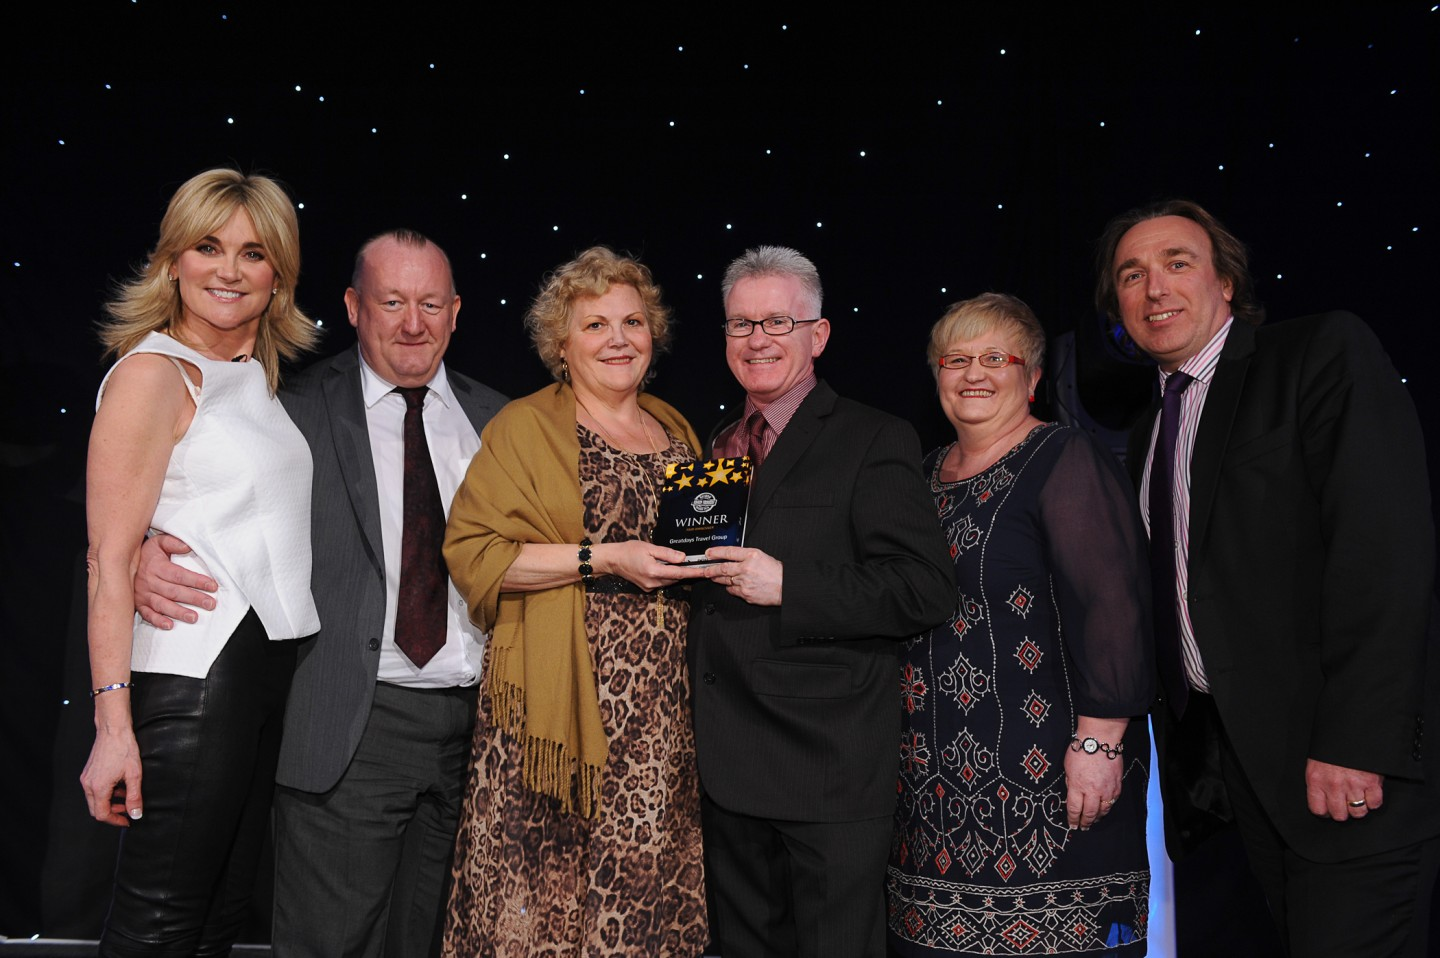 L-R: Anthea Turner, Andy Beard, Gina Halden, Martin Slater, Theresa Foley – P&O Ferries, Paul Beaumont, National Coach Tourism Awards